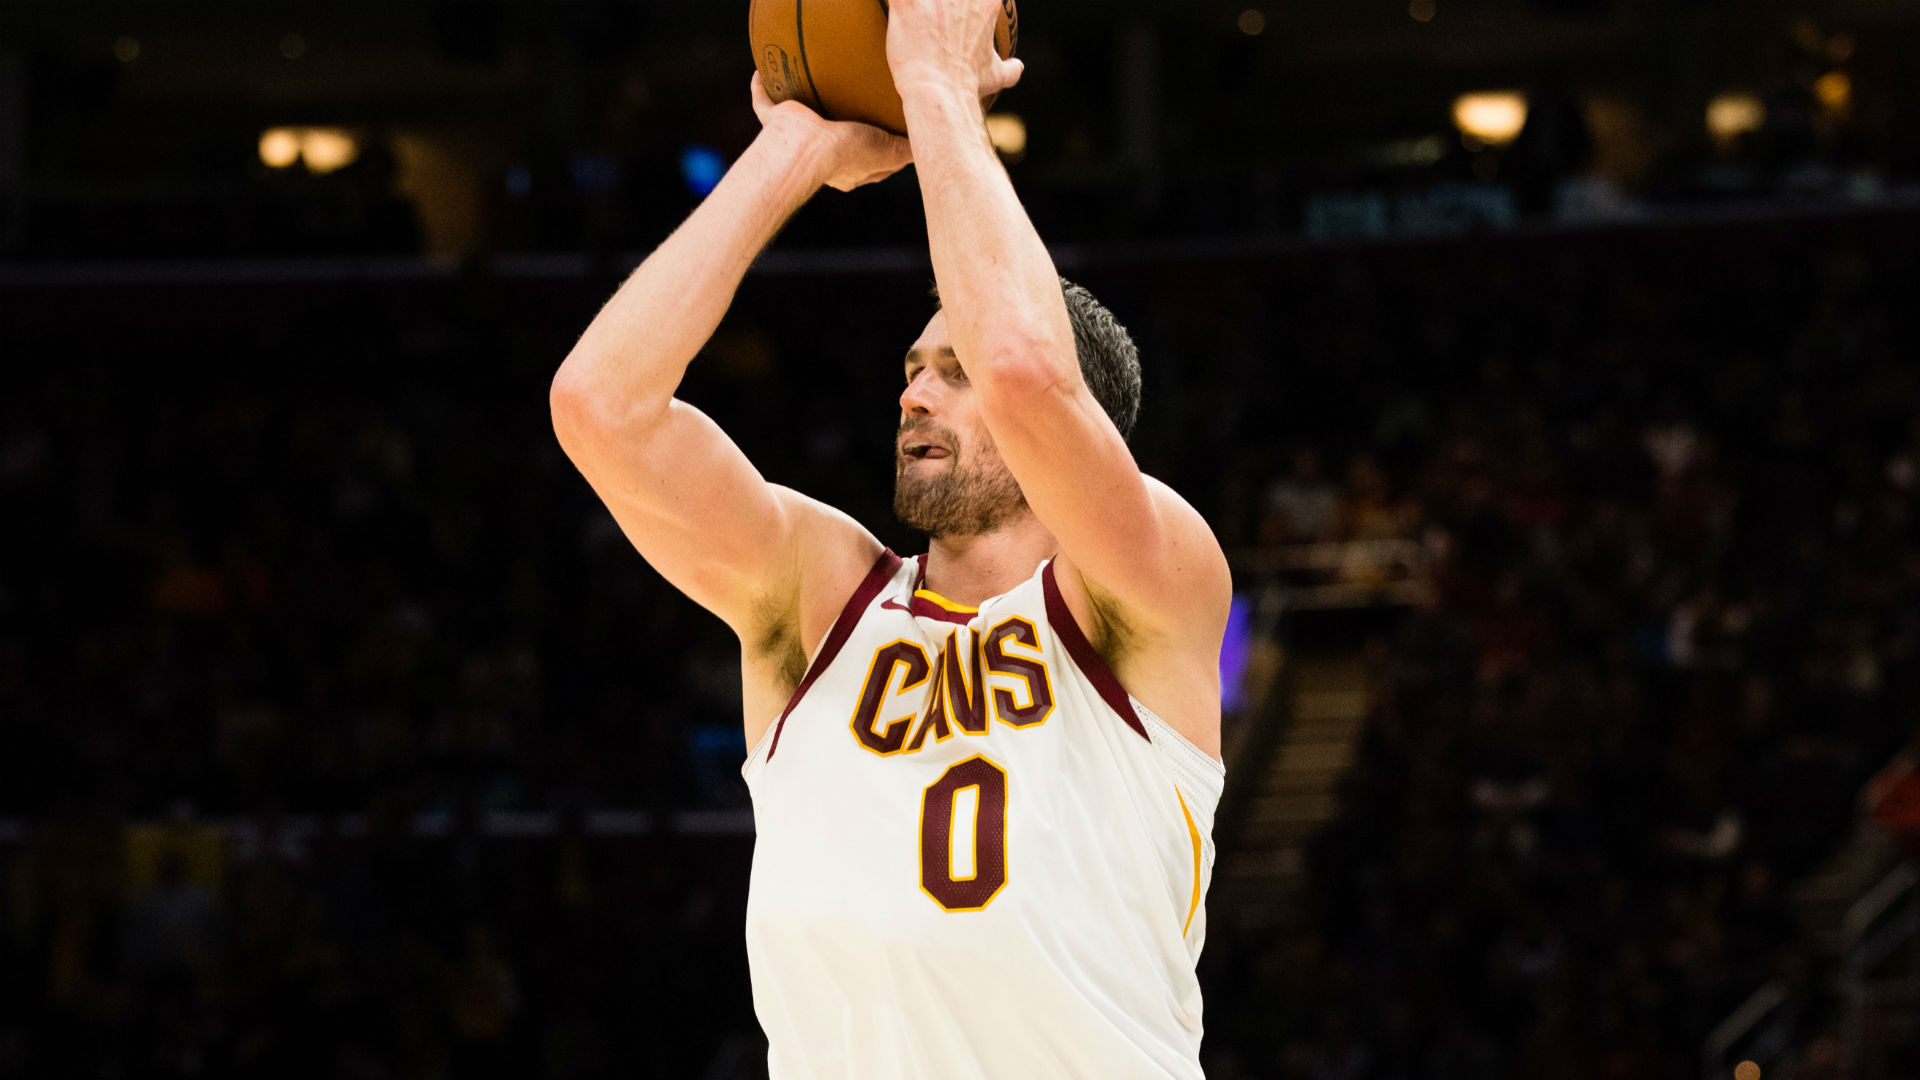 NBA trade rumors: Cavaliers would want combination of young players, picks for Kevin Love